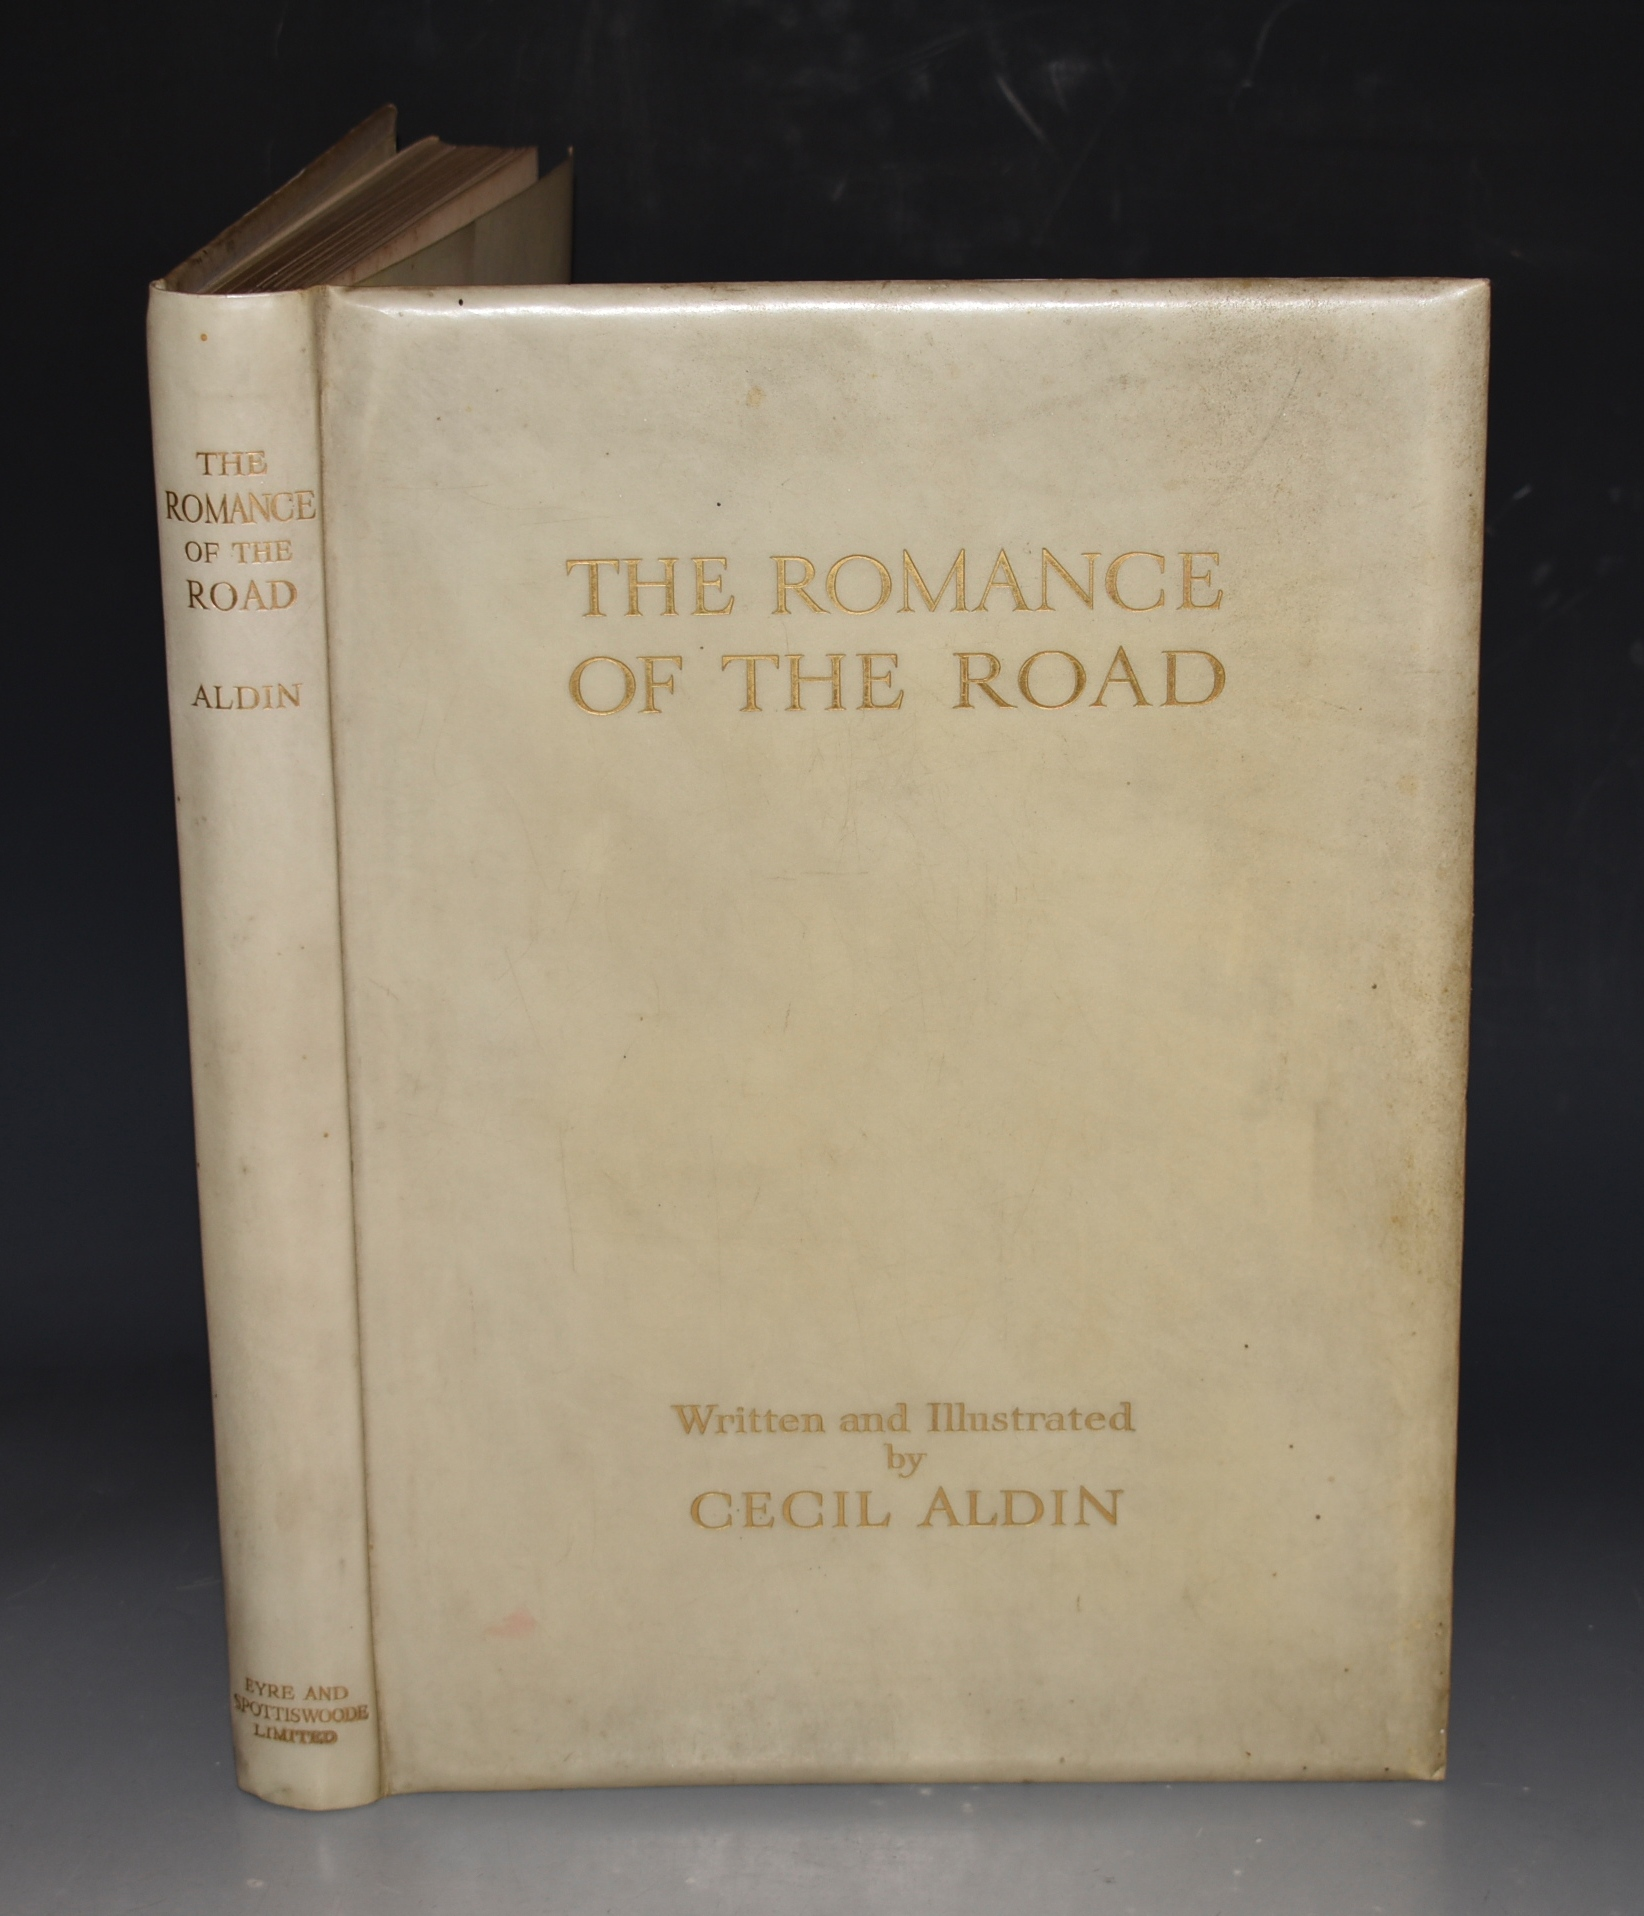 Image for The Romance of the Road. Written & illustrated by Cecil Aldin. SIGNED LIMITED EDITION.